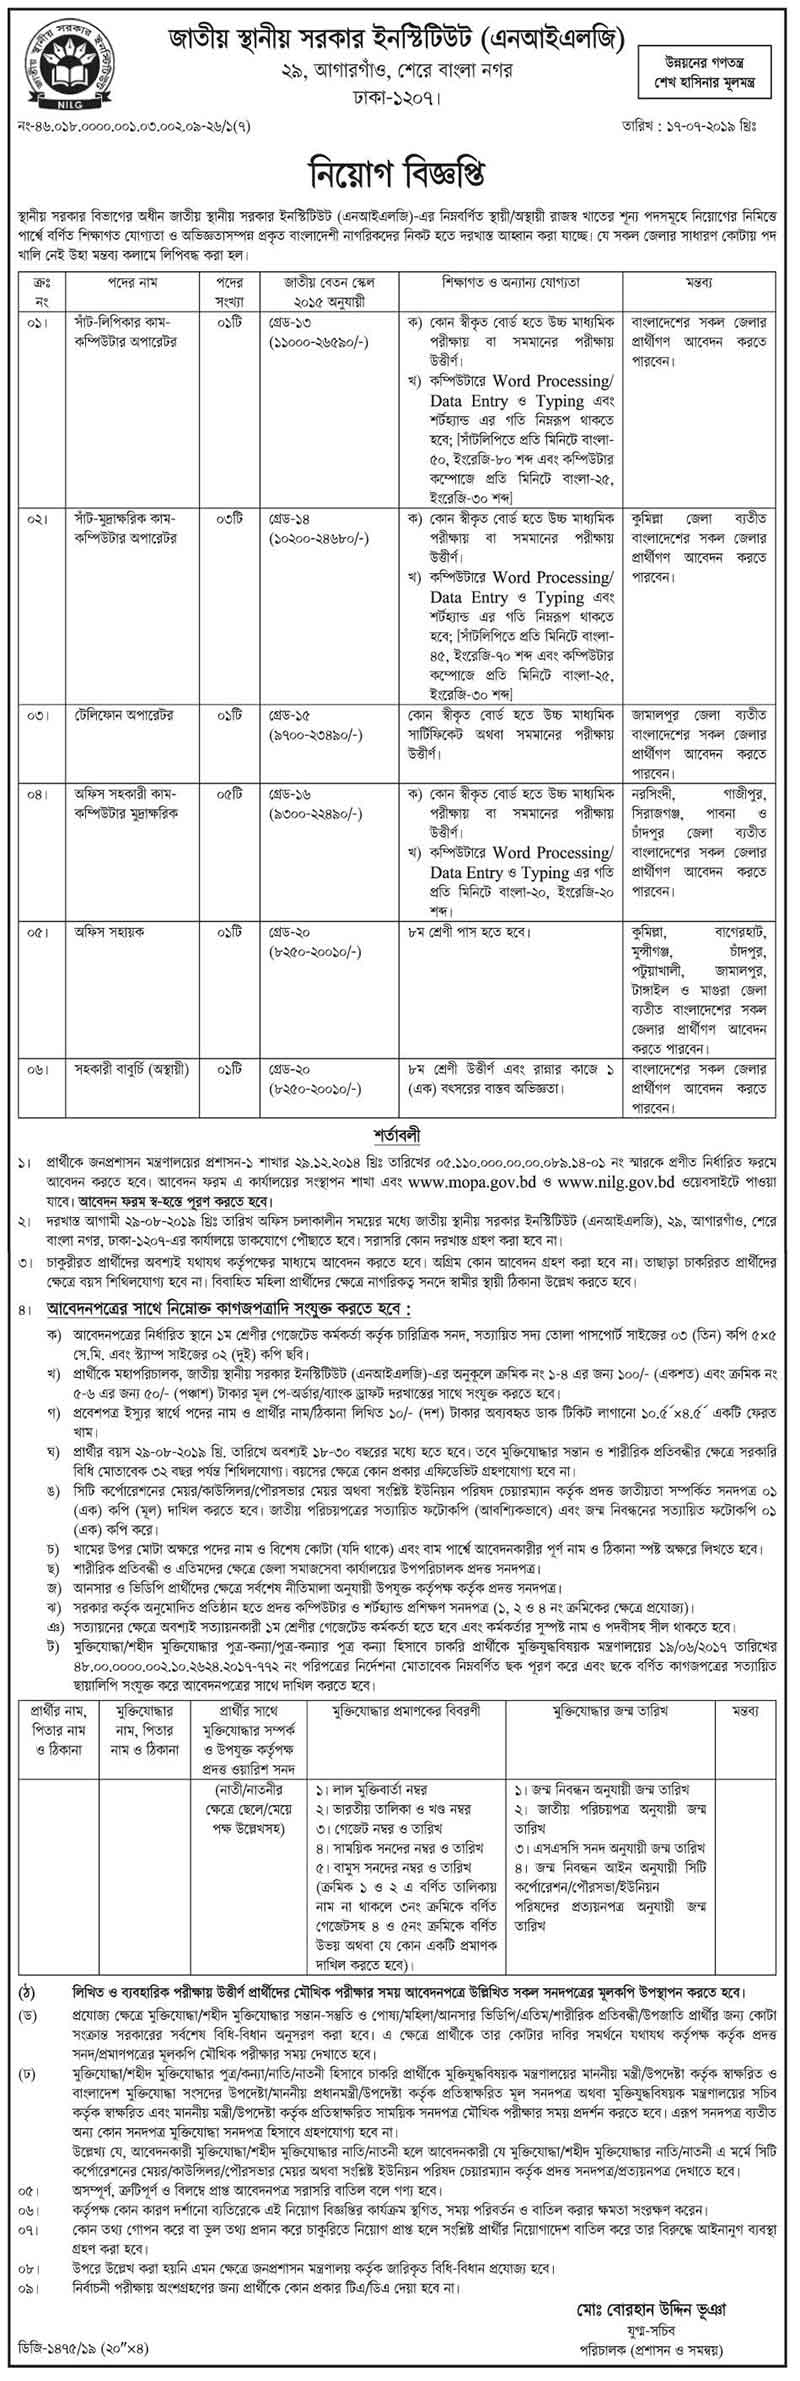 National Institute of Local Government NILG Job Circular 2019